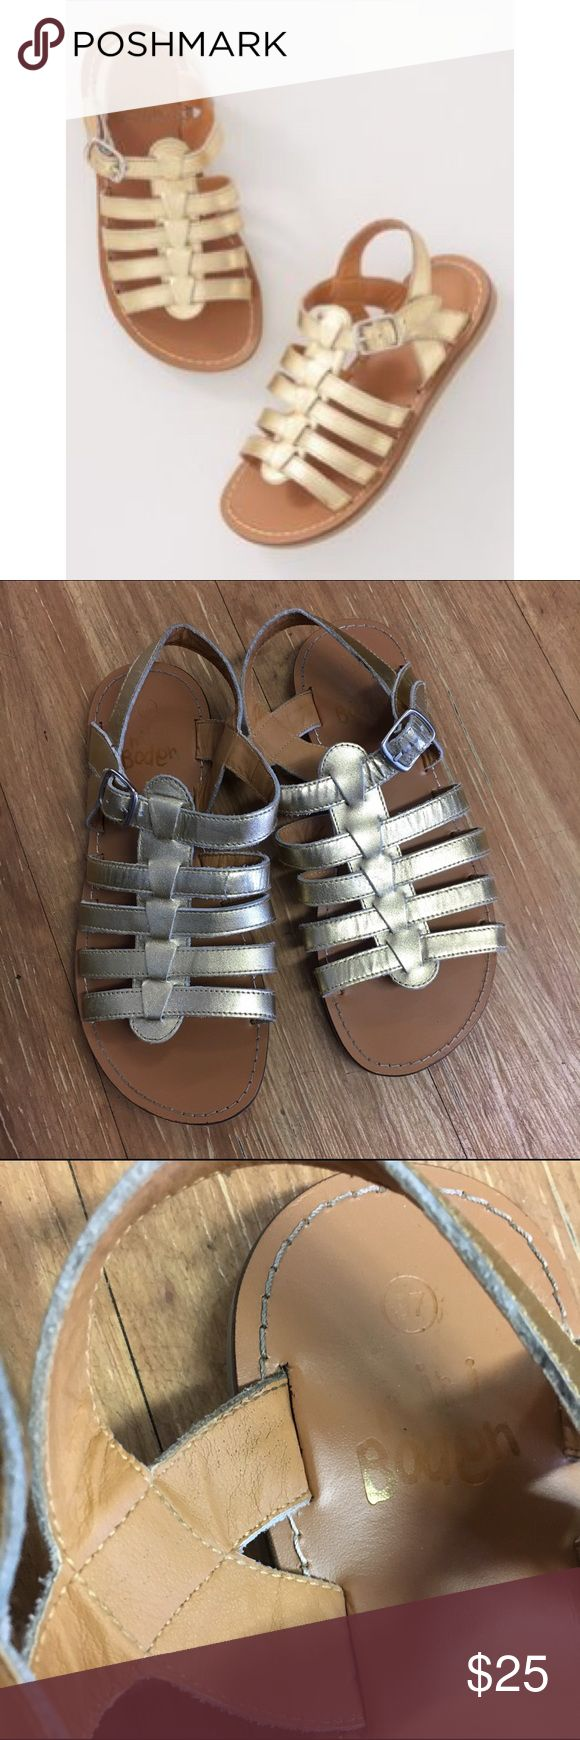 Mini Boden Gold Sandals 37 Gladiator 5 Mini Boden Gold Sandals 37 Gladiator 5  Big girl 5 or Euro 37.  Good to very good used condition.  Saw some wear but definitely not every day.  Plenty of life left.  #gladiator #gold #shimmer #shine #sparkle #sandals #coolkicks #summershoes #minibodenbrandlove Mini Boden Shoes Sandals & Flip Flops